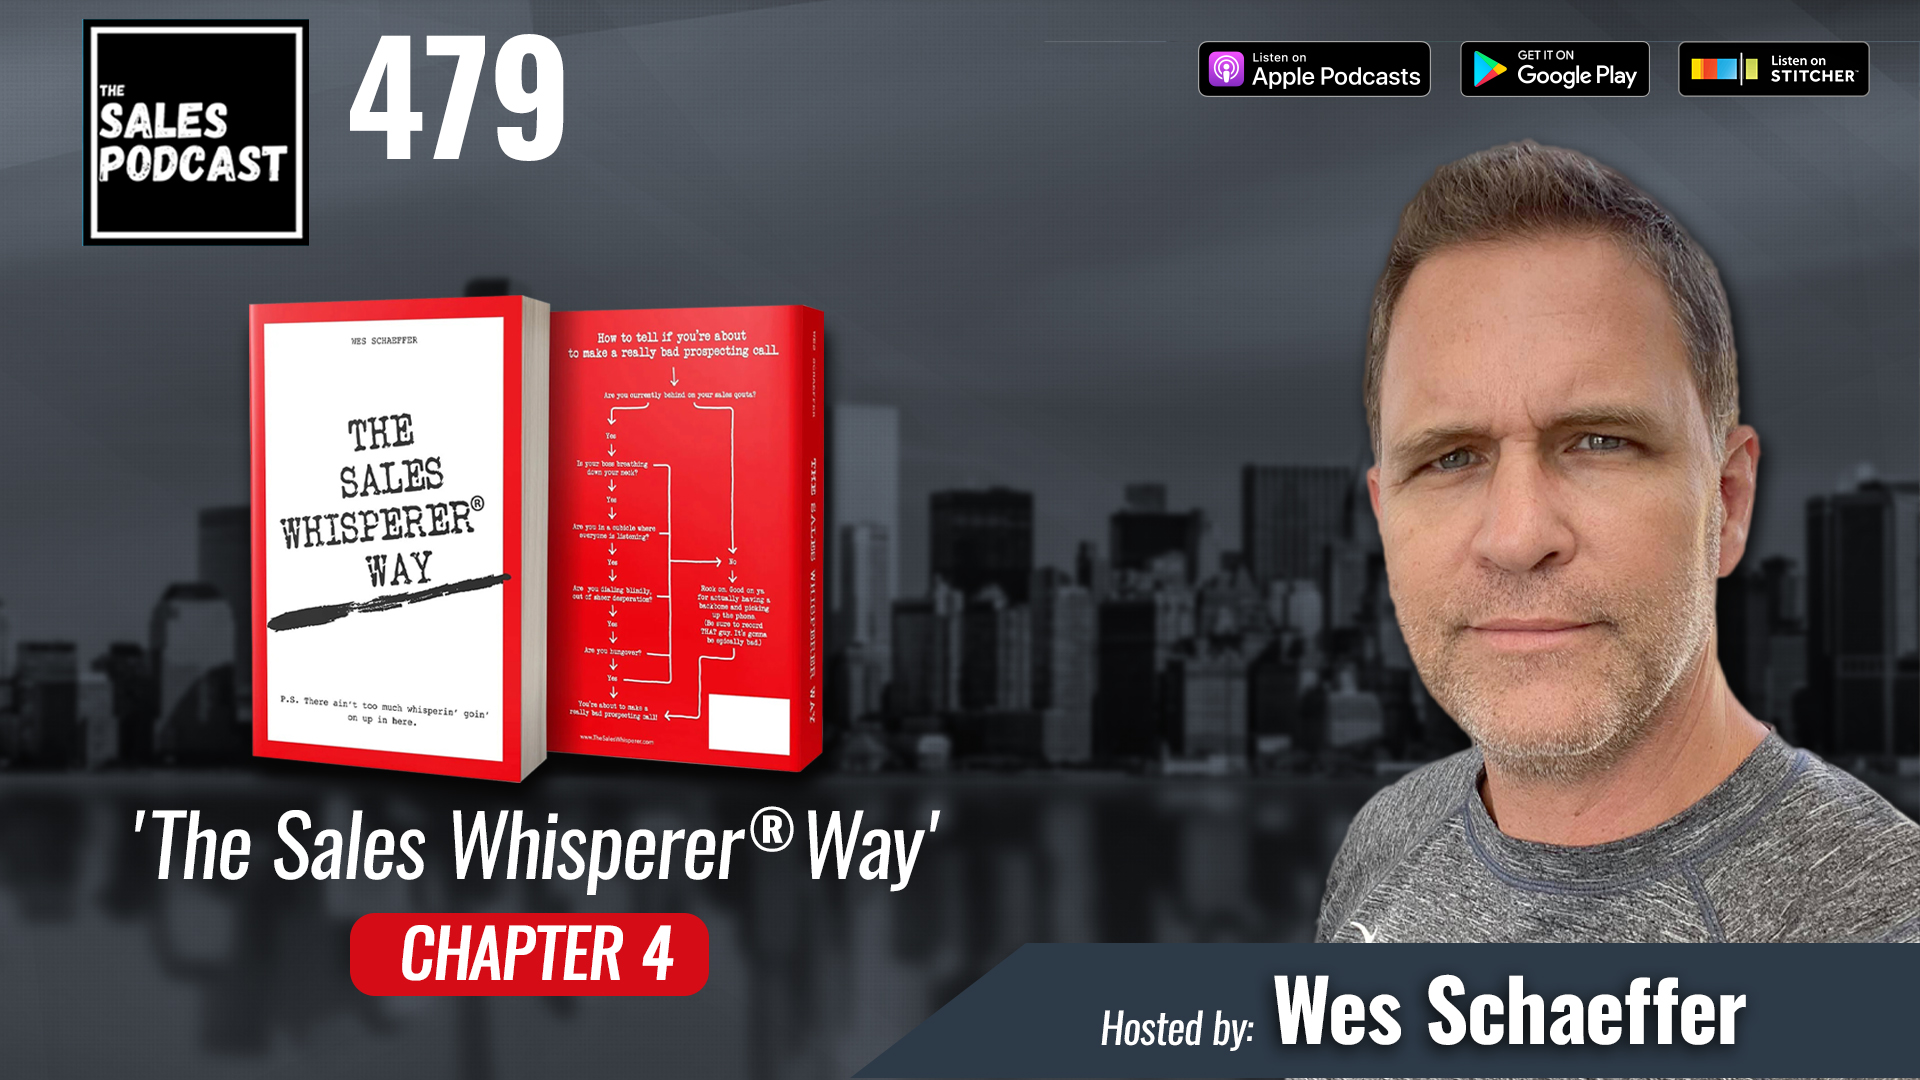 'The Sales Whisperer® Way' Chapter 4 on The Sales Podcast with Wes Schaeffer, The Sales Whisperer®